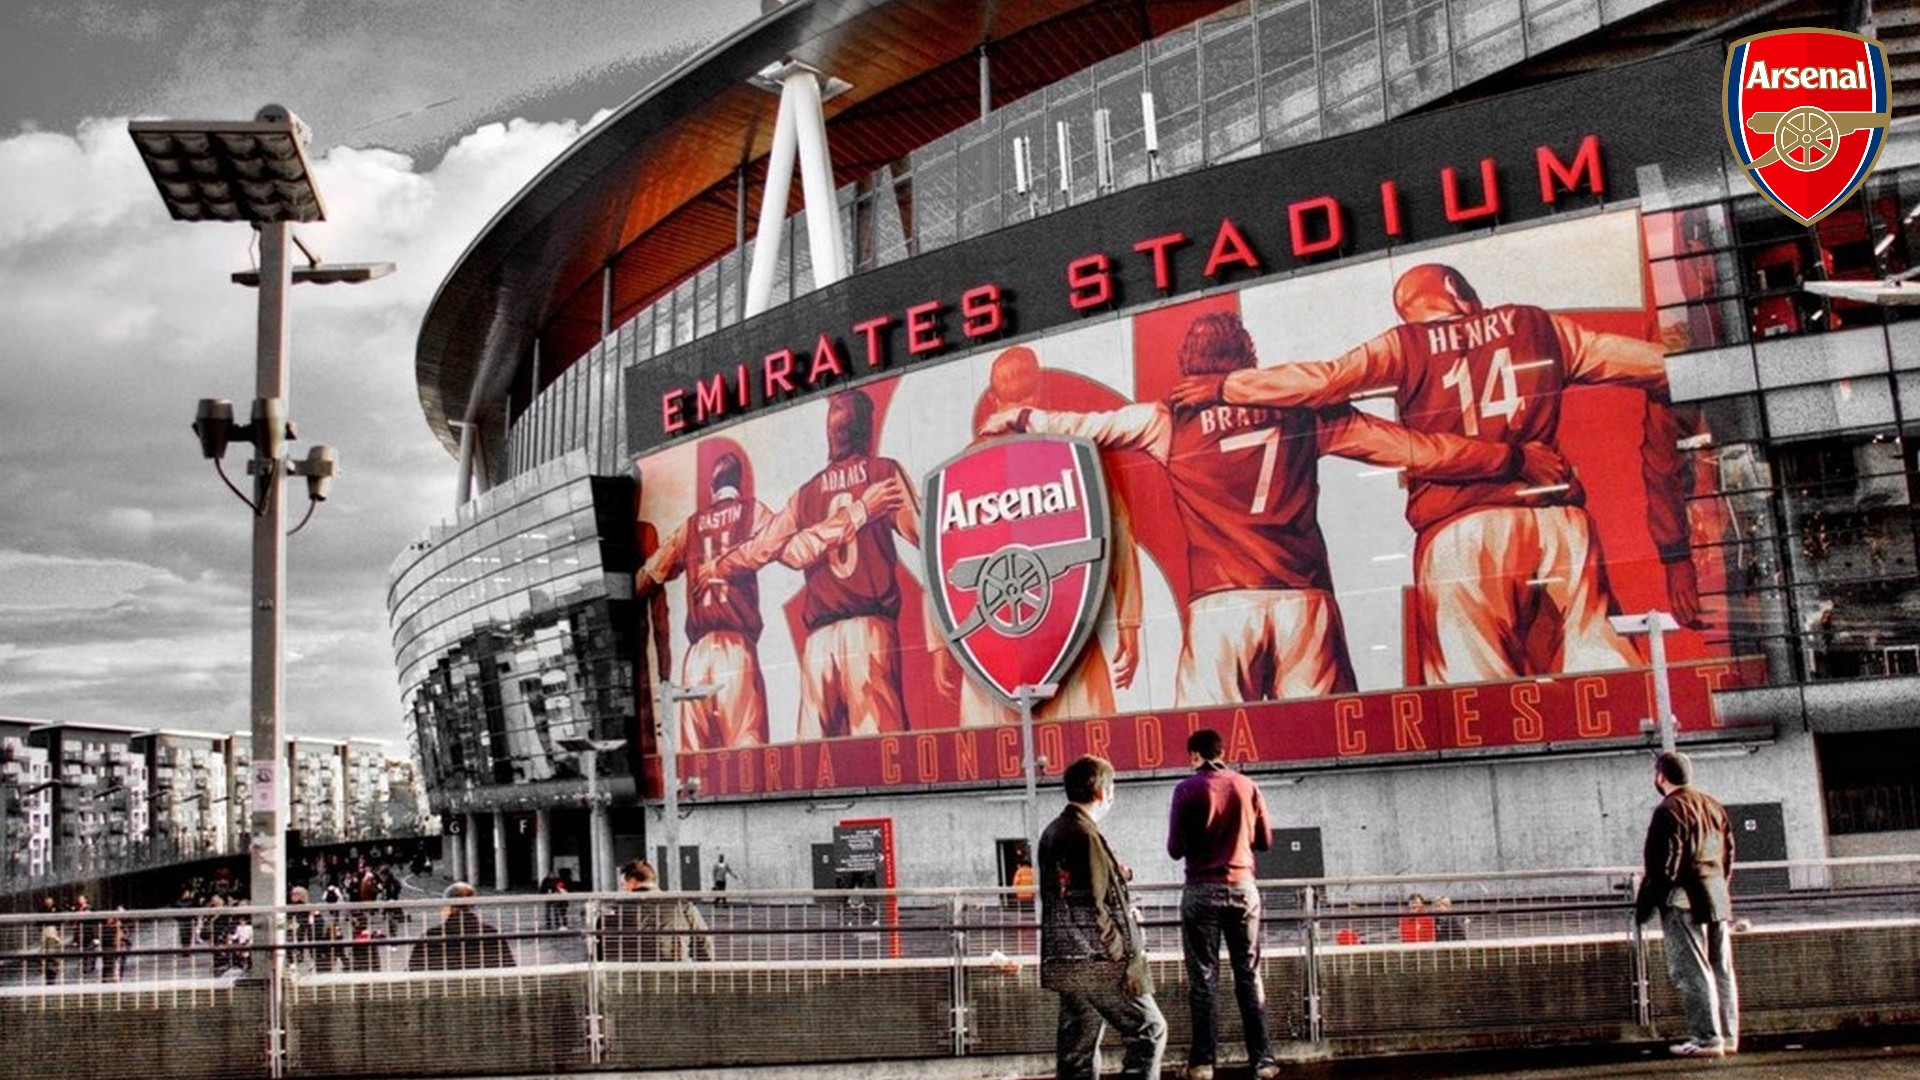 arsenal stadium hd wallpapers 2021